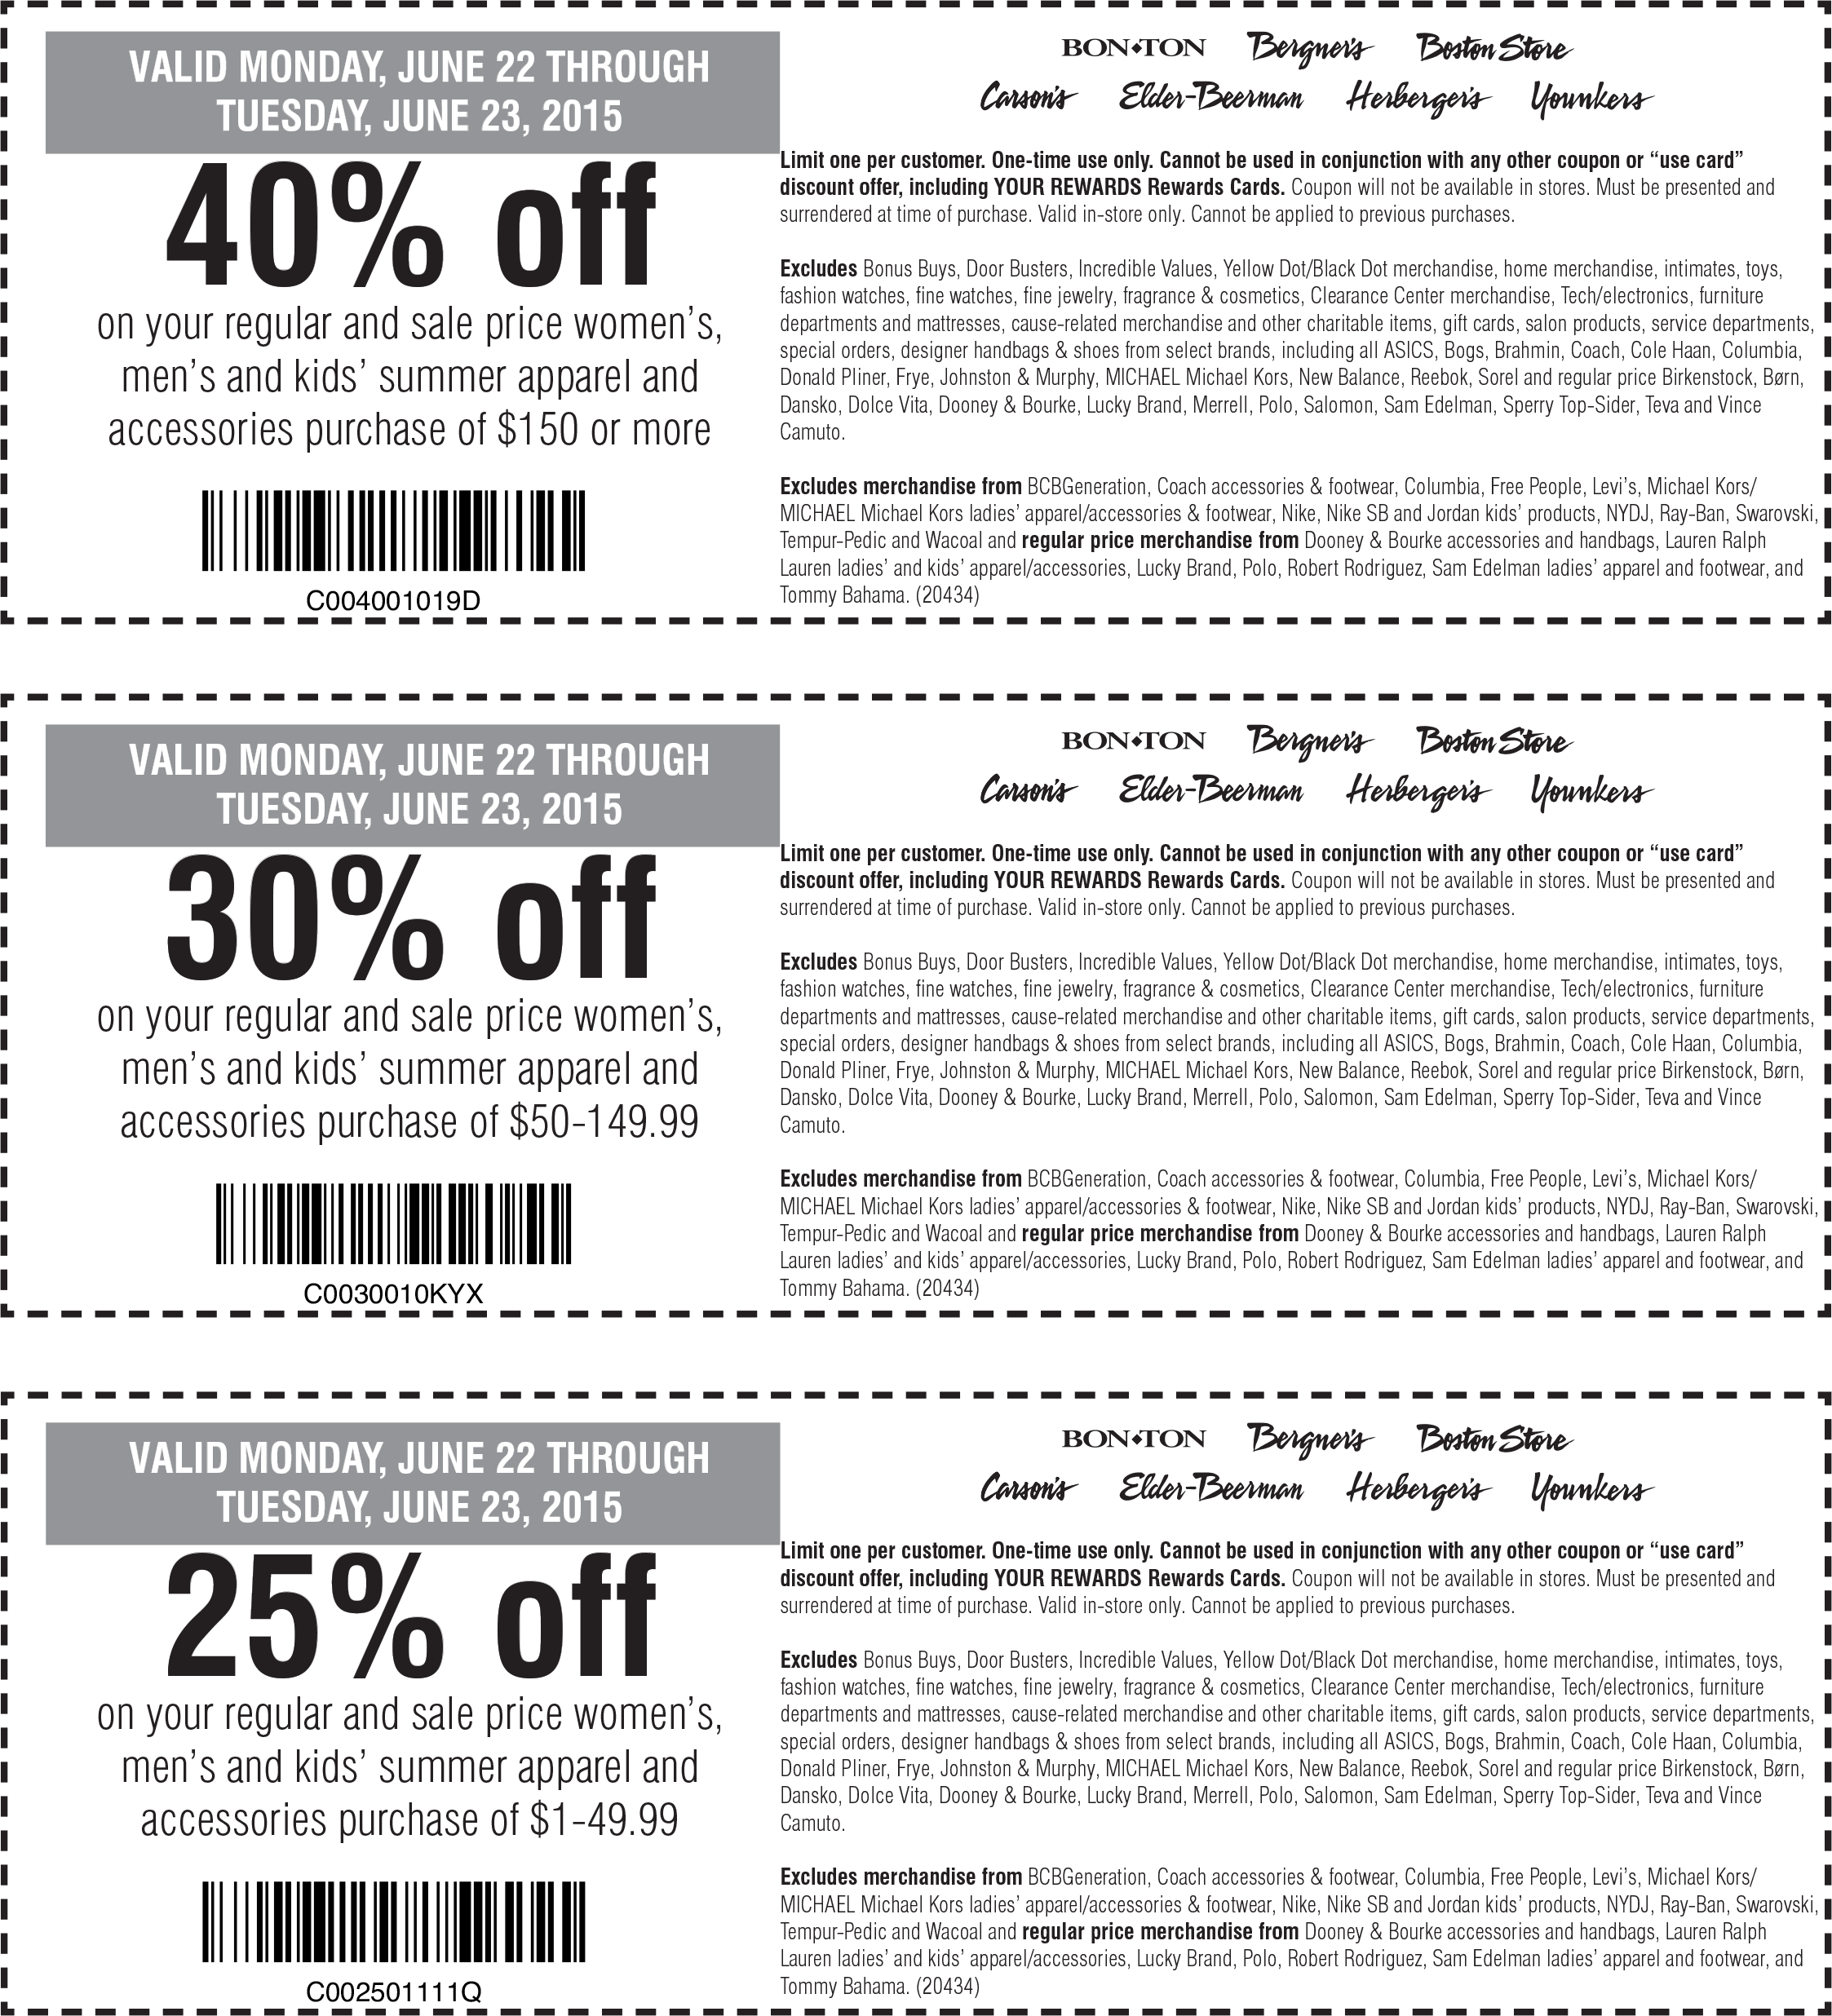 Carsons Coupon December 2016 25-40% off summer gear at Carsons, Bon Ton, Bergners, Boston Store, Elder-Beerman, Herbergers & Younkers stores